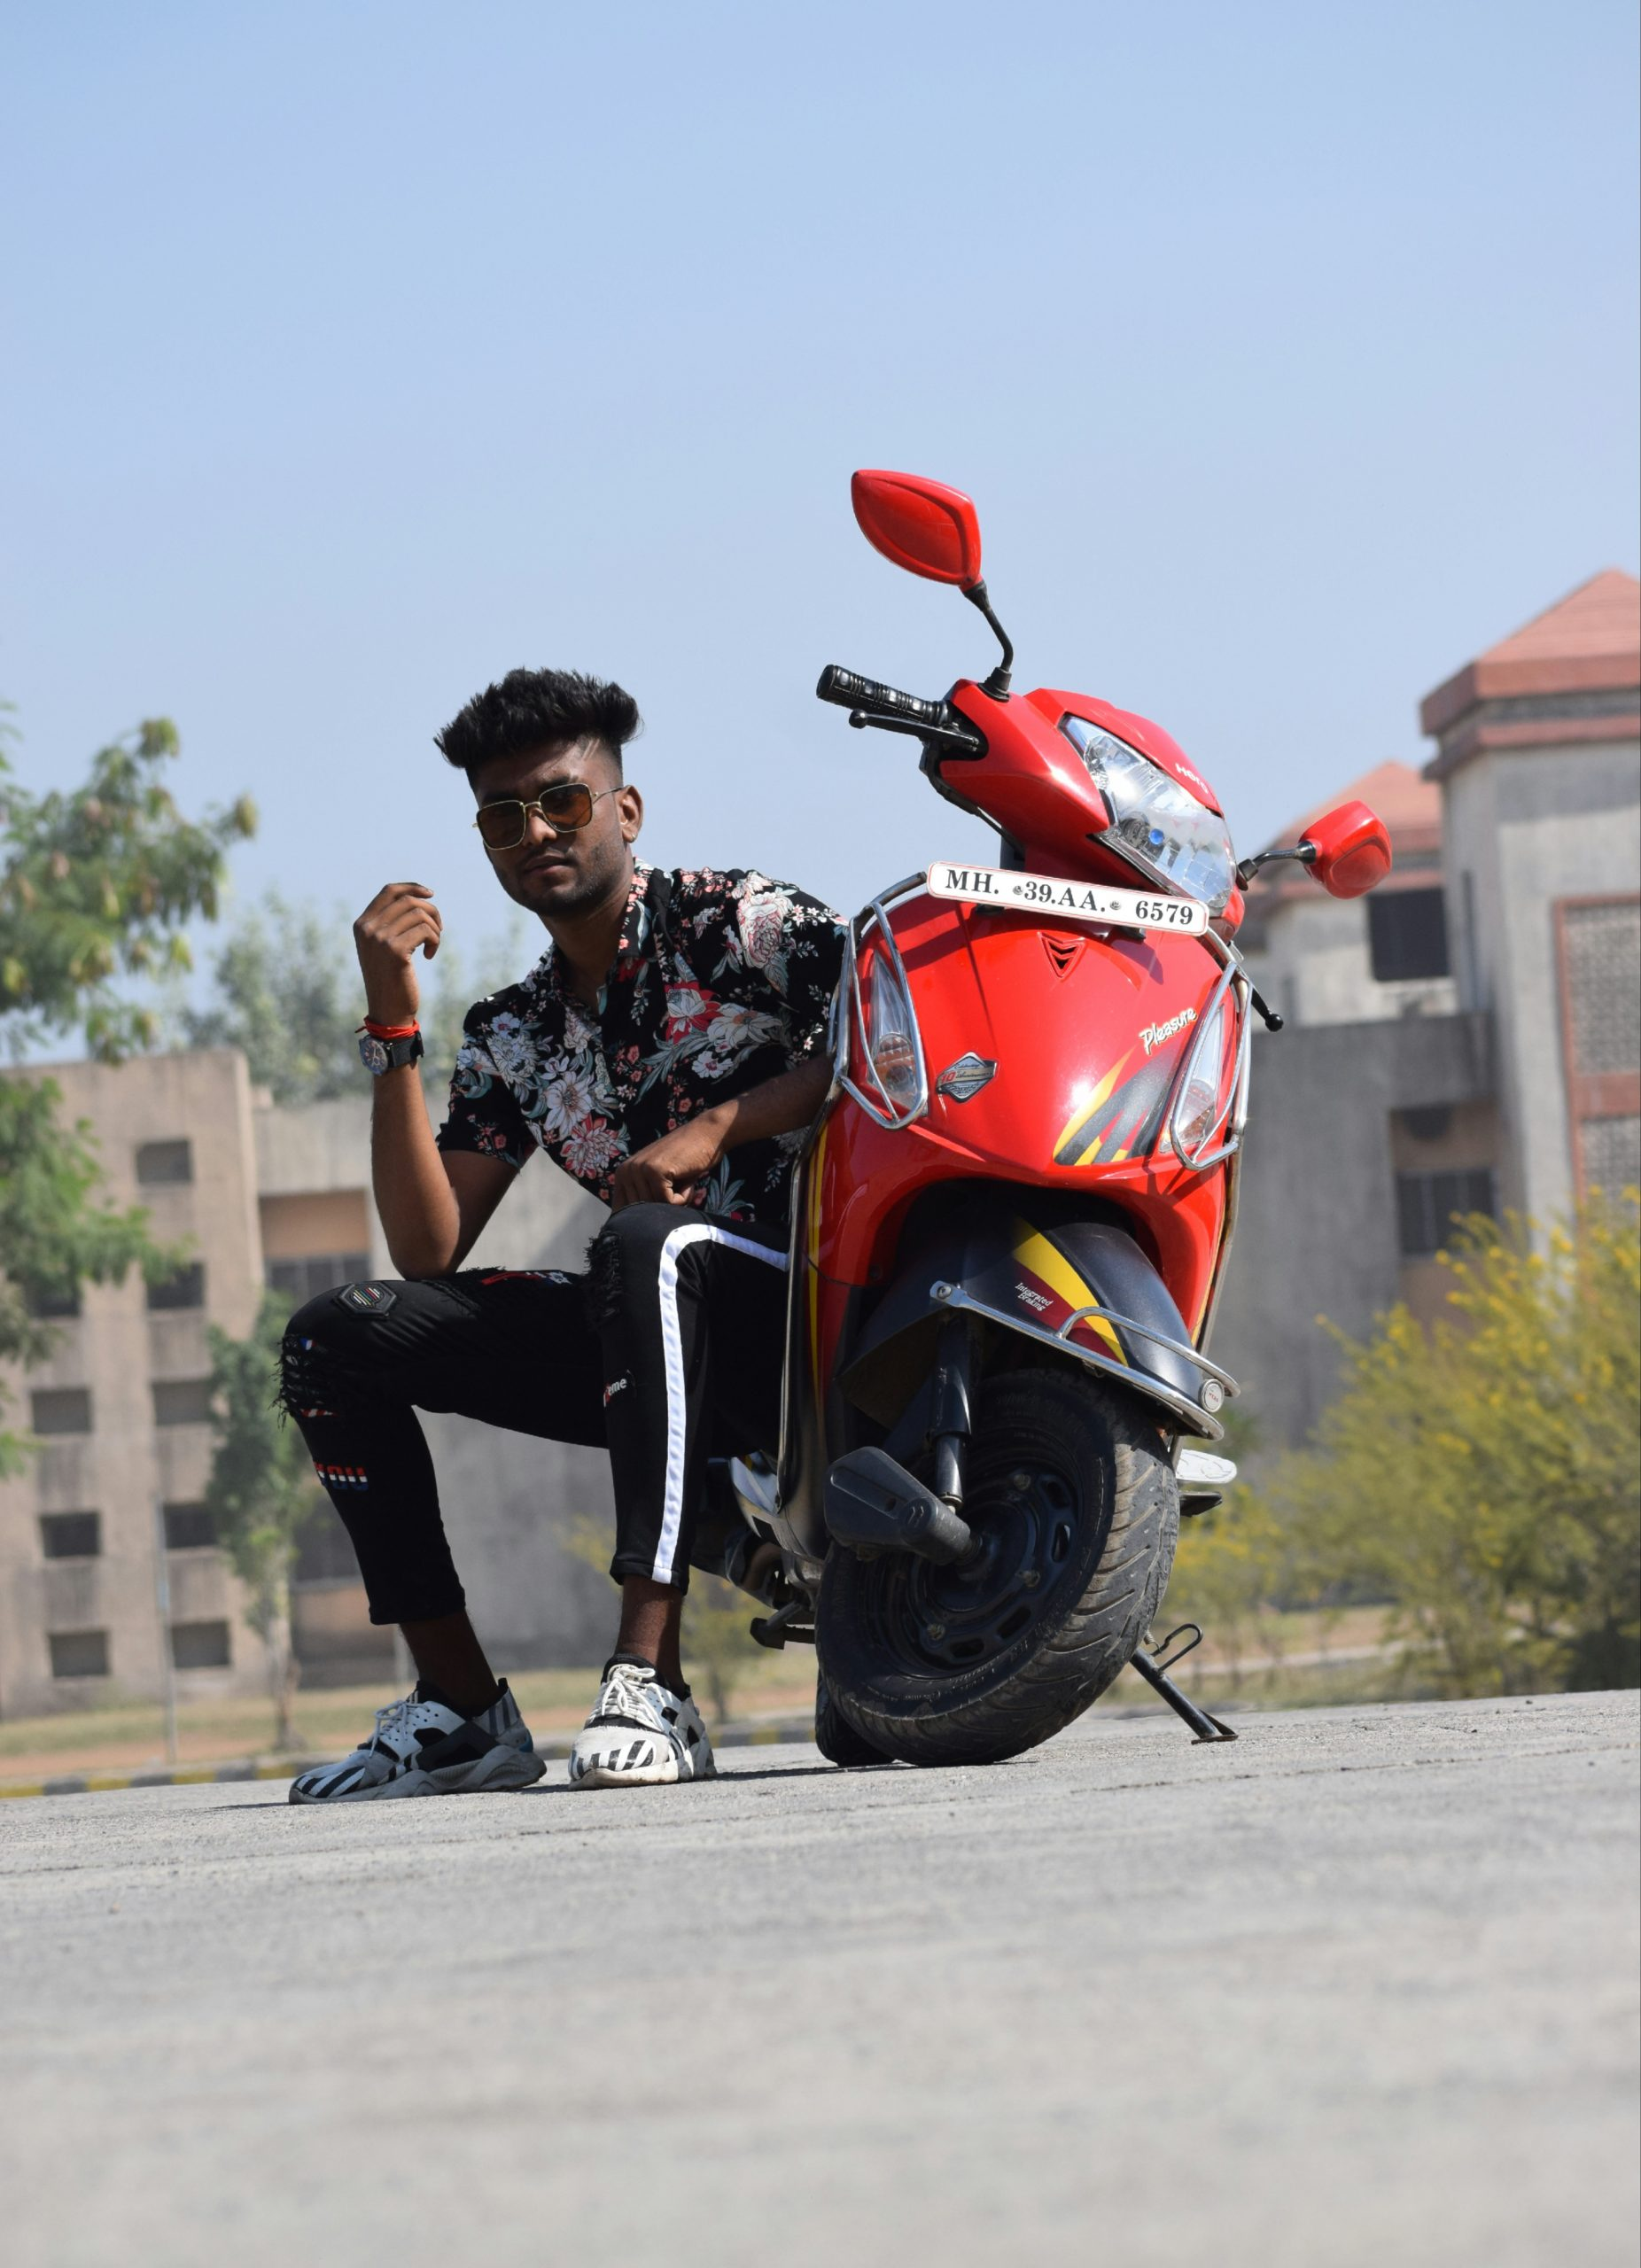 Boy posing with scooty on road